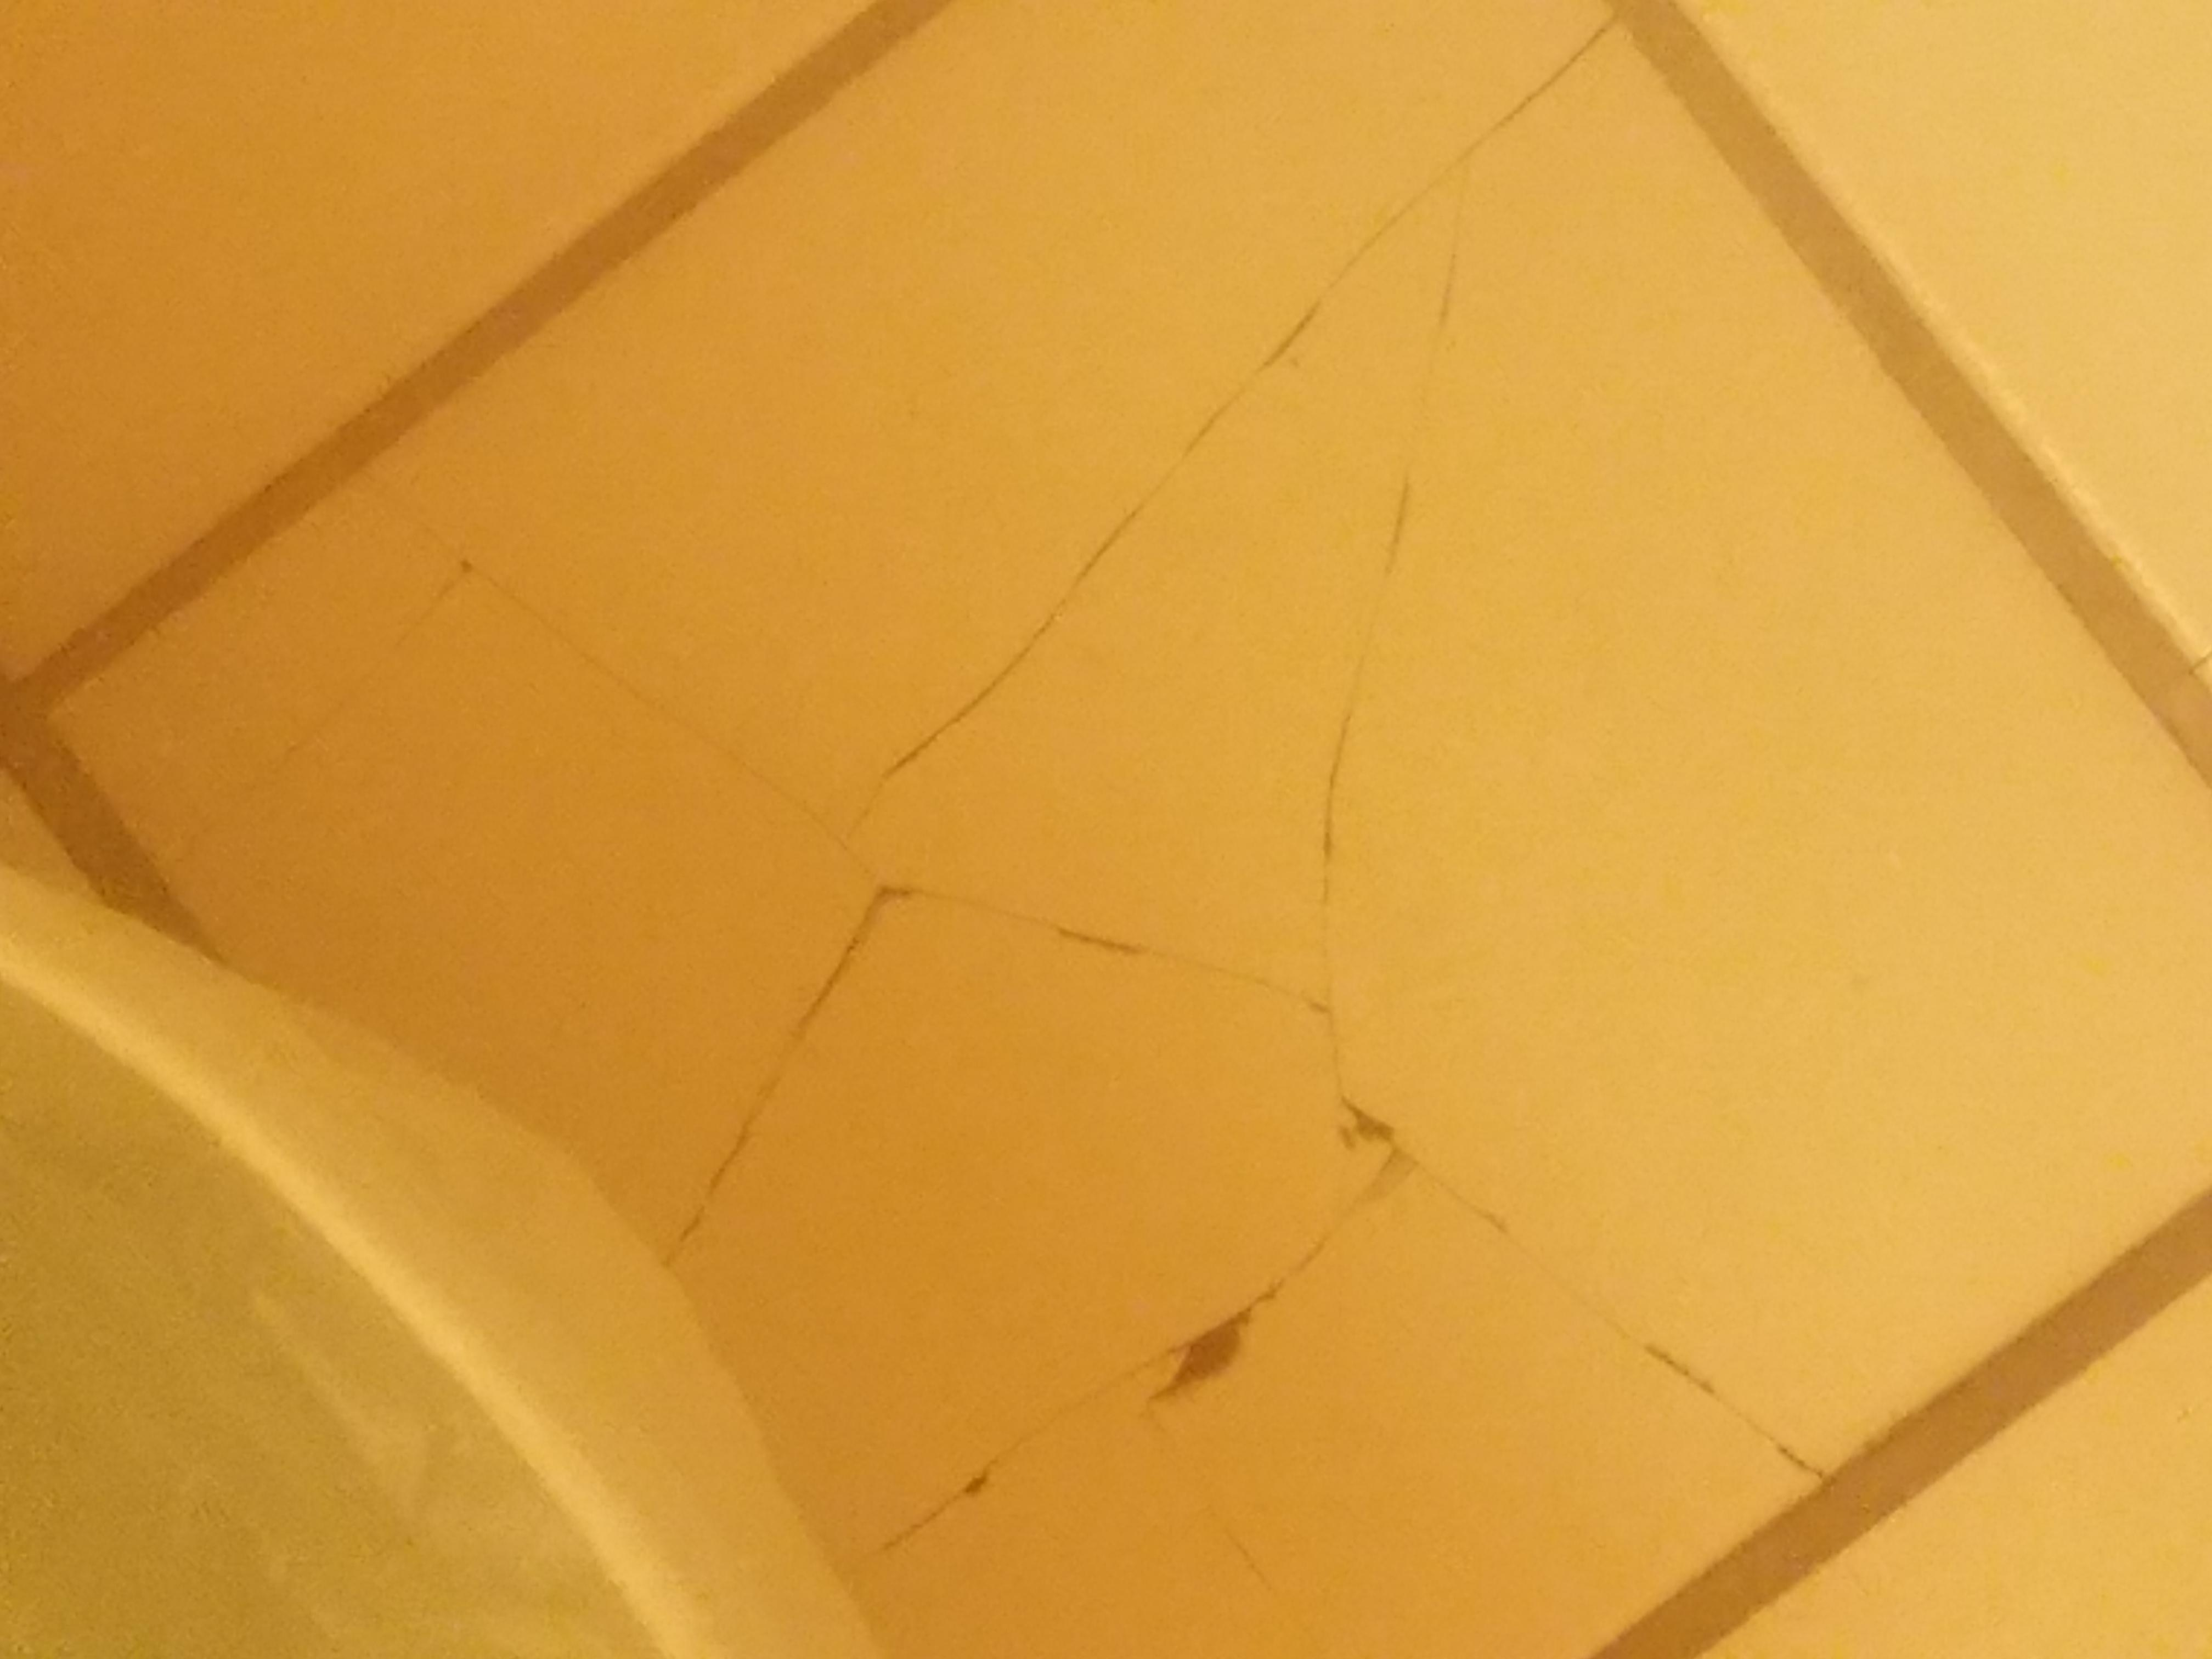 The paint was peeling all over the room